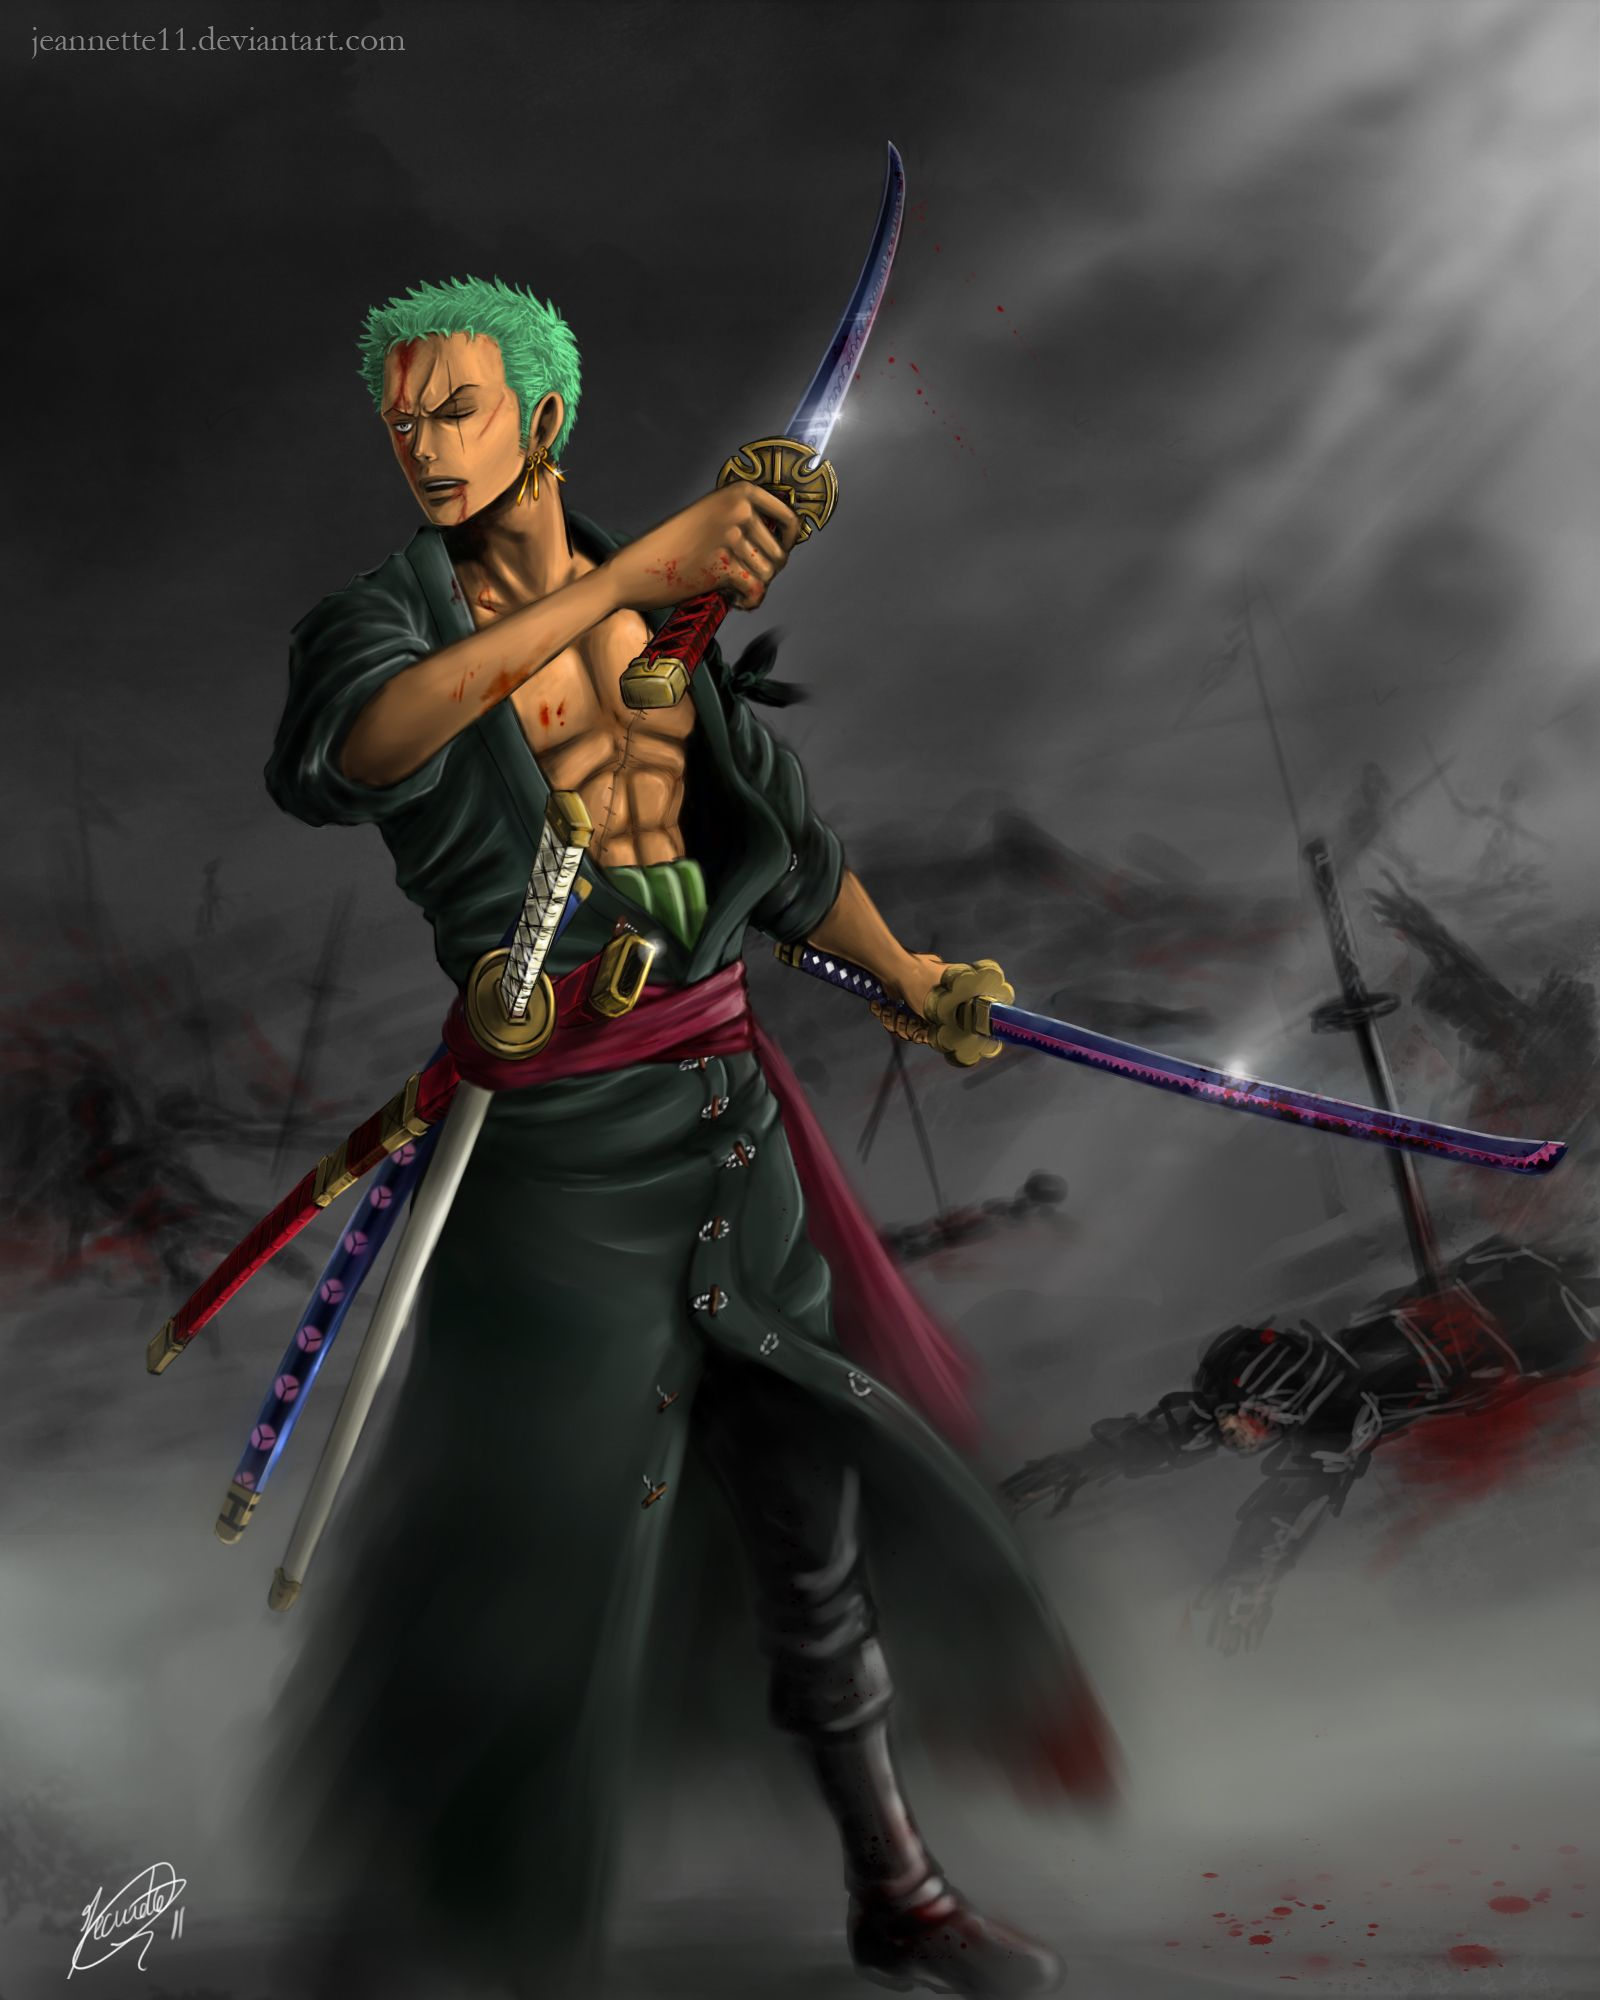 One Piece Zoro Wallpaper: Haki One Piece Zoro Wallpapers